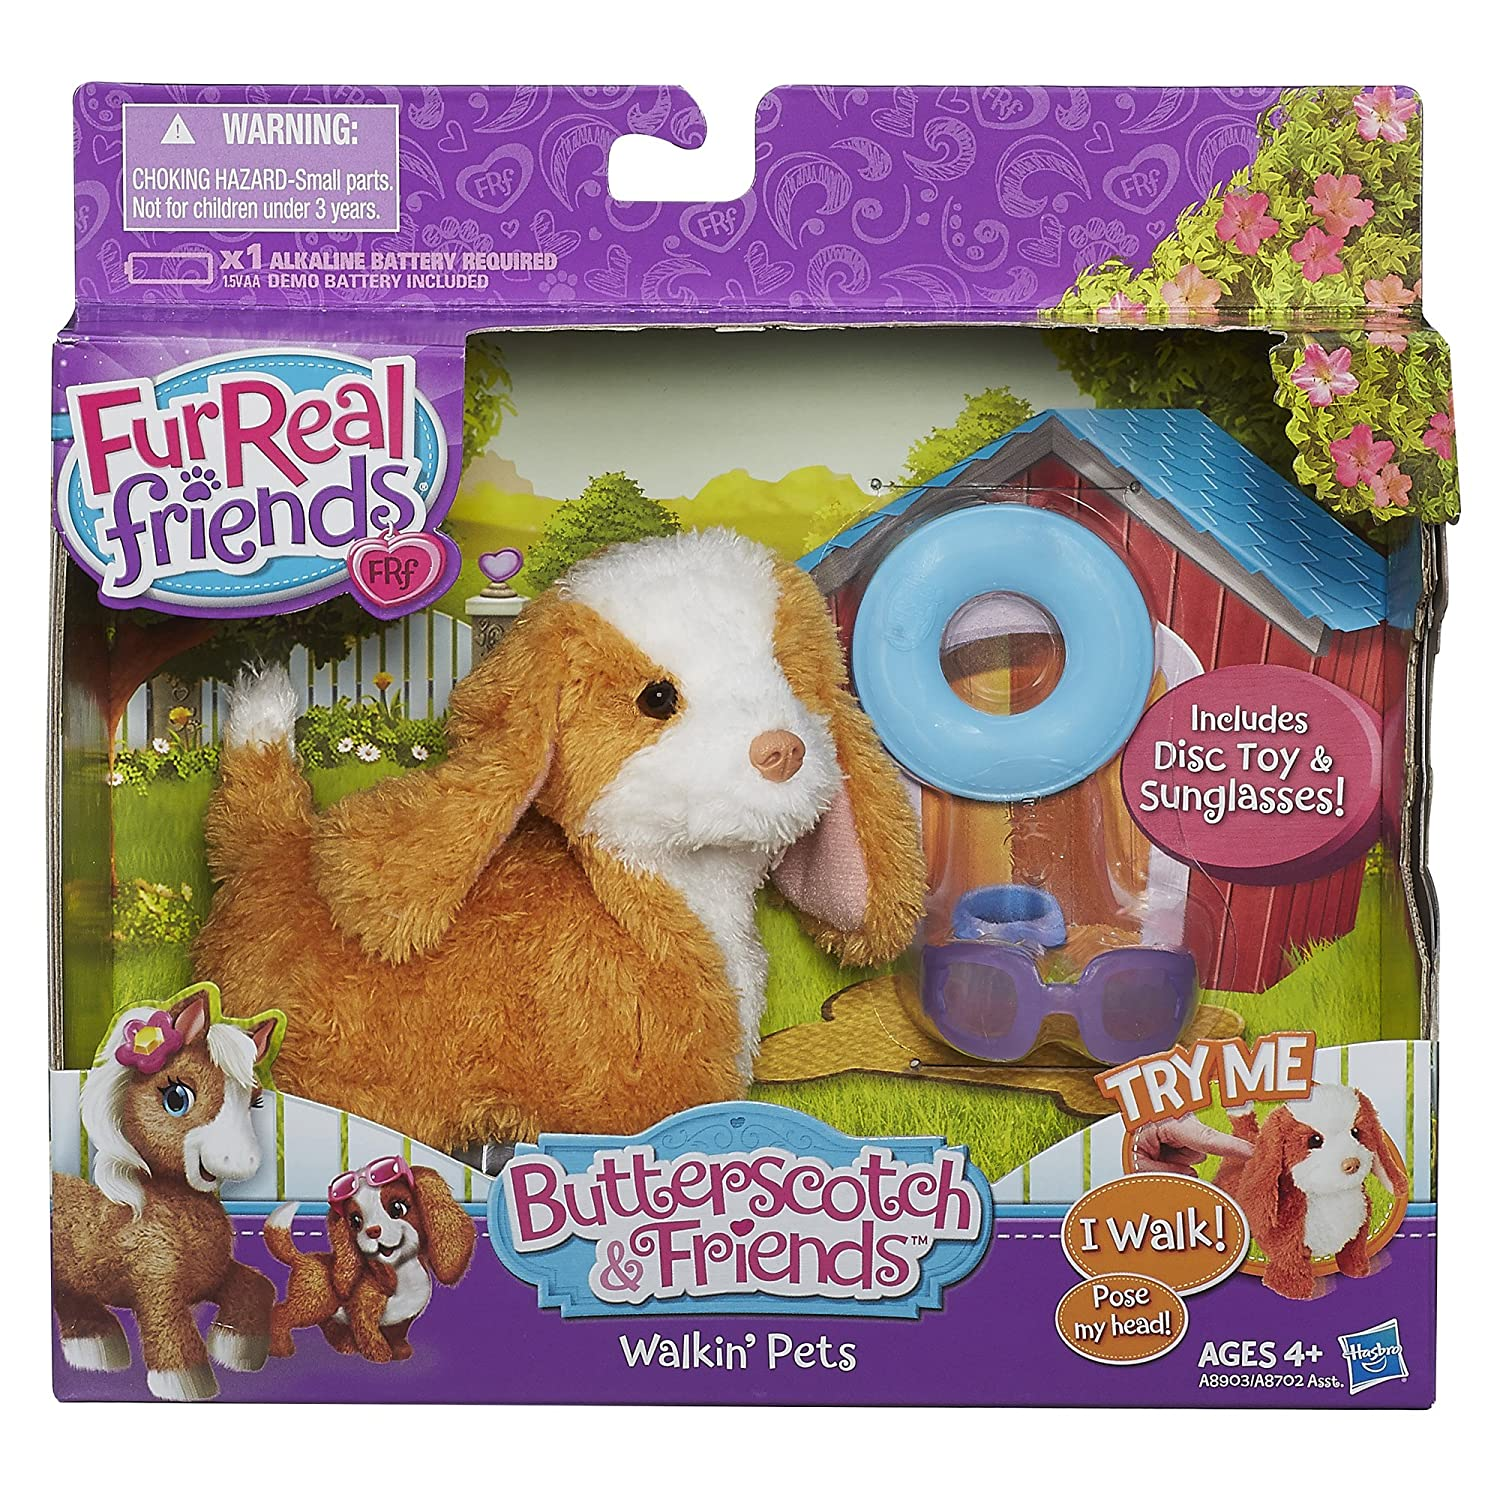 Furreal friends baby snow leopard flurry review robotic dog toys - Amazon Com Furreal Friends Butterscotch And Friends Walking Pets Maple Sugar Spaniel Pet Toys Games